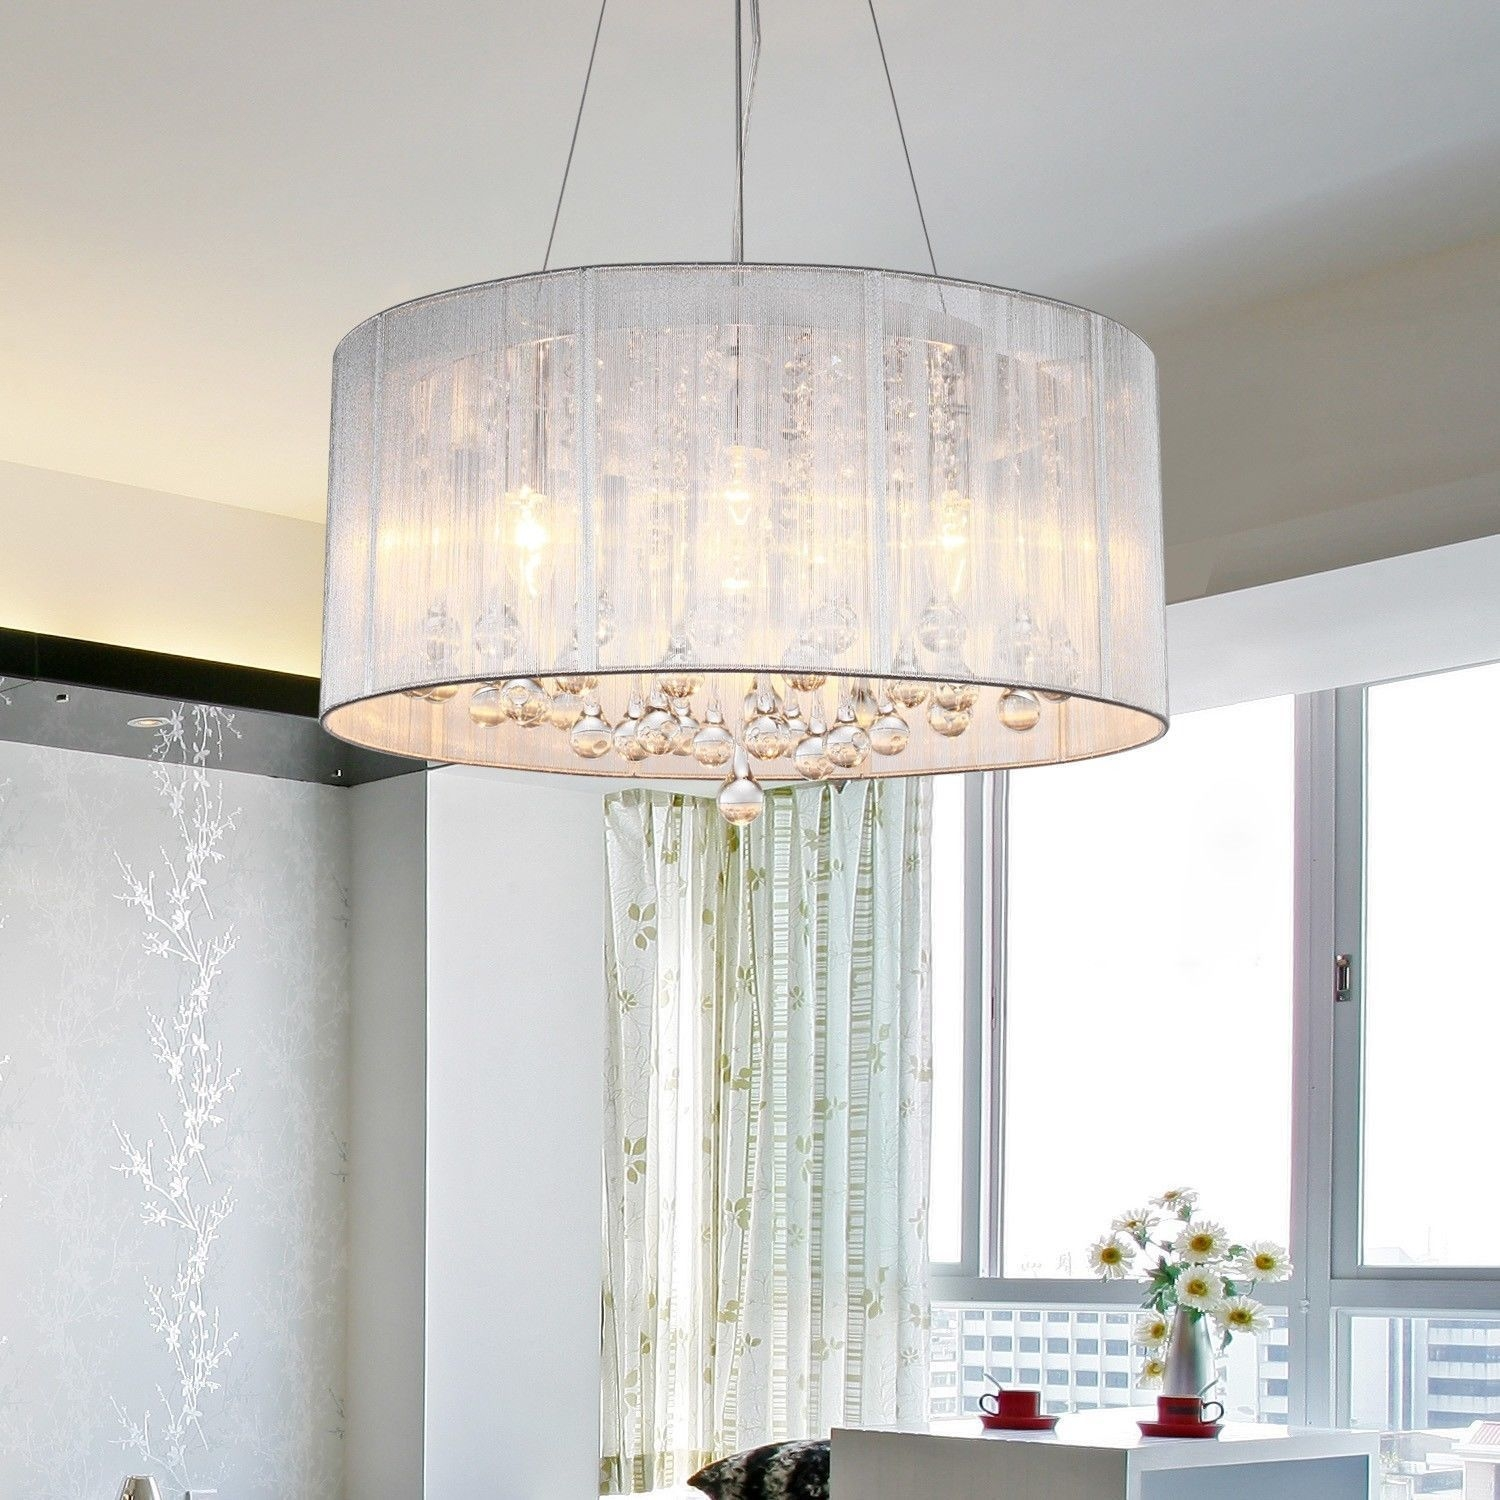 Very Awesome Lamp Shade Chandelier Best Home Decor Inspirations Intended For Crystal Chandeliers With Shades (Photo 11 of 25)